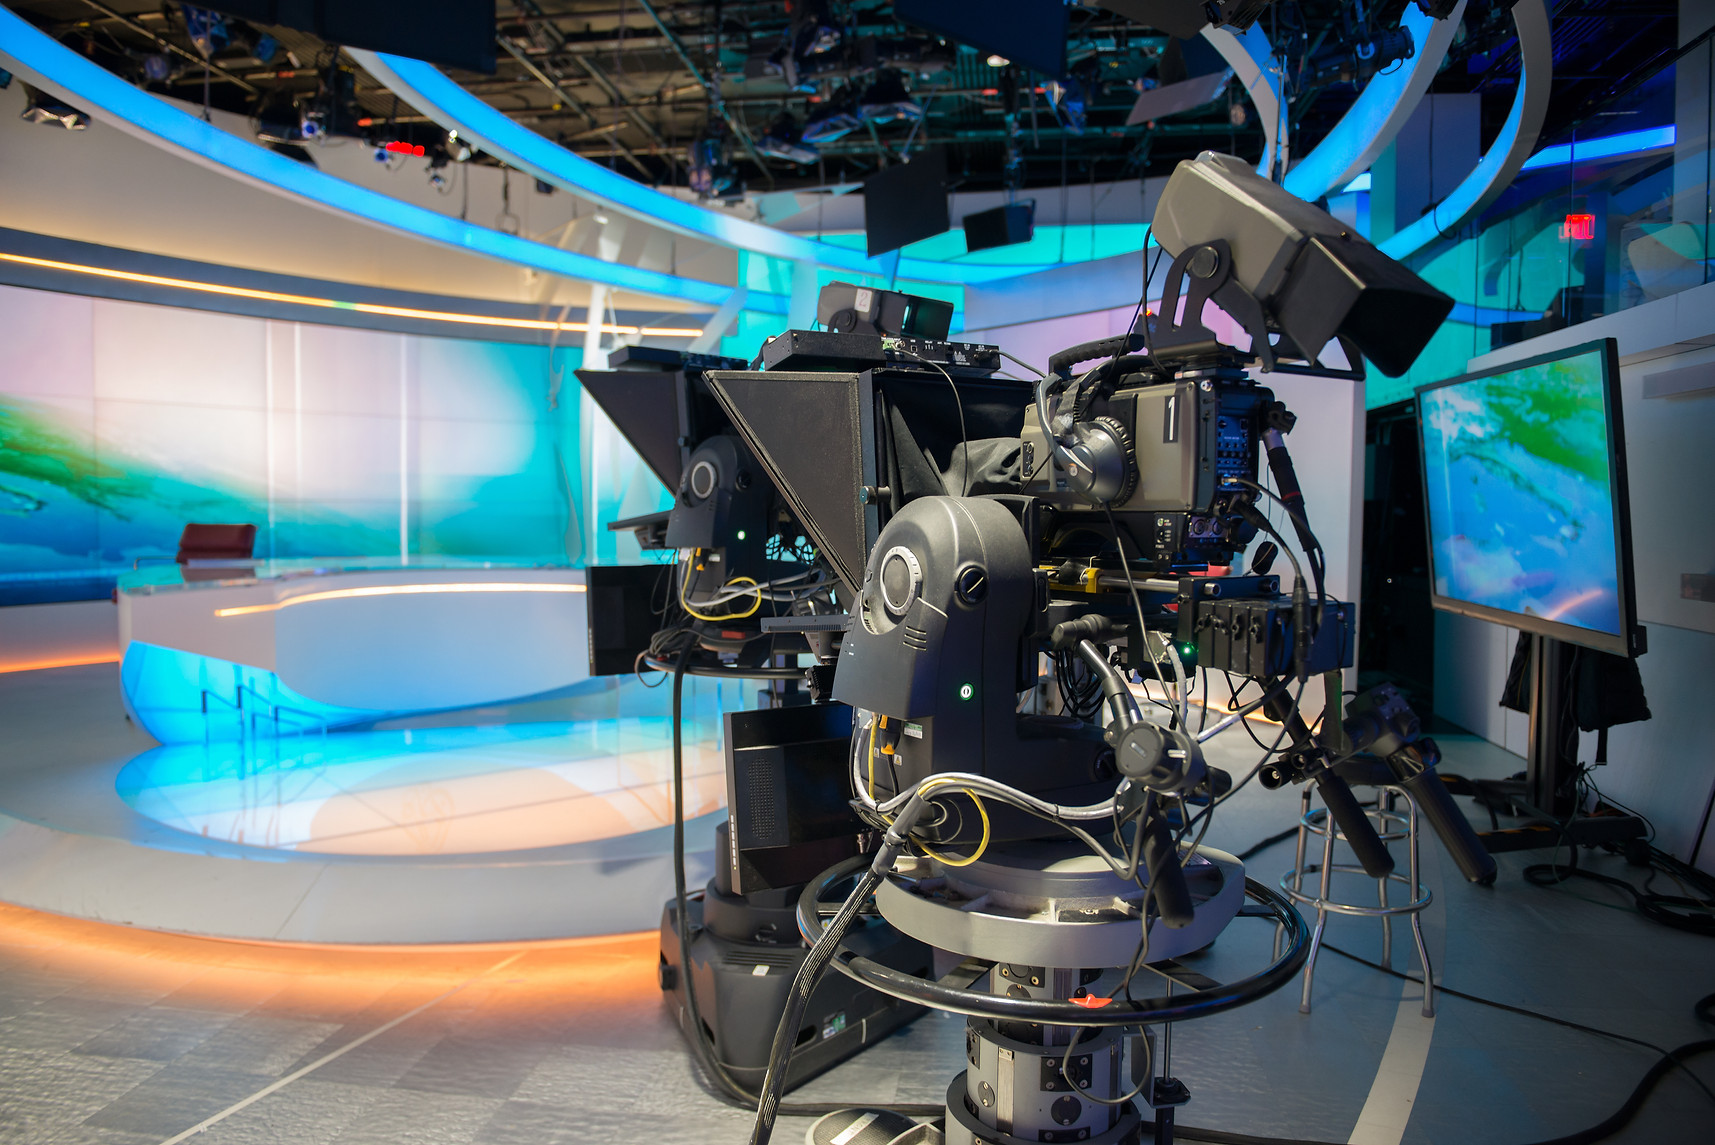 TV NEWS cast studio with camera and ligh